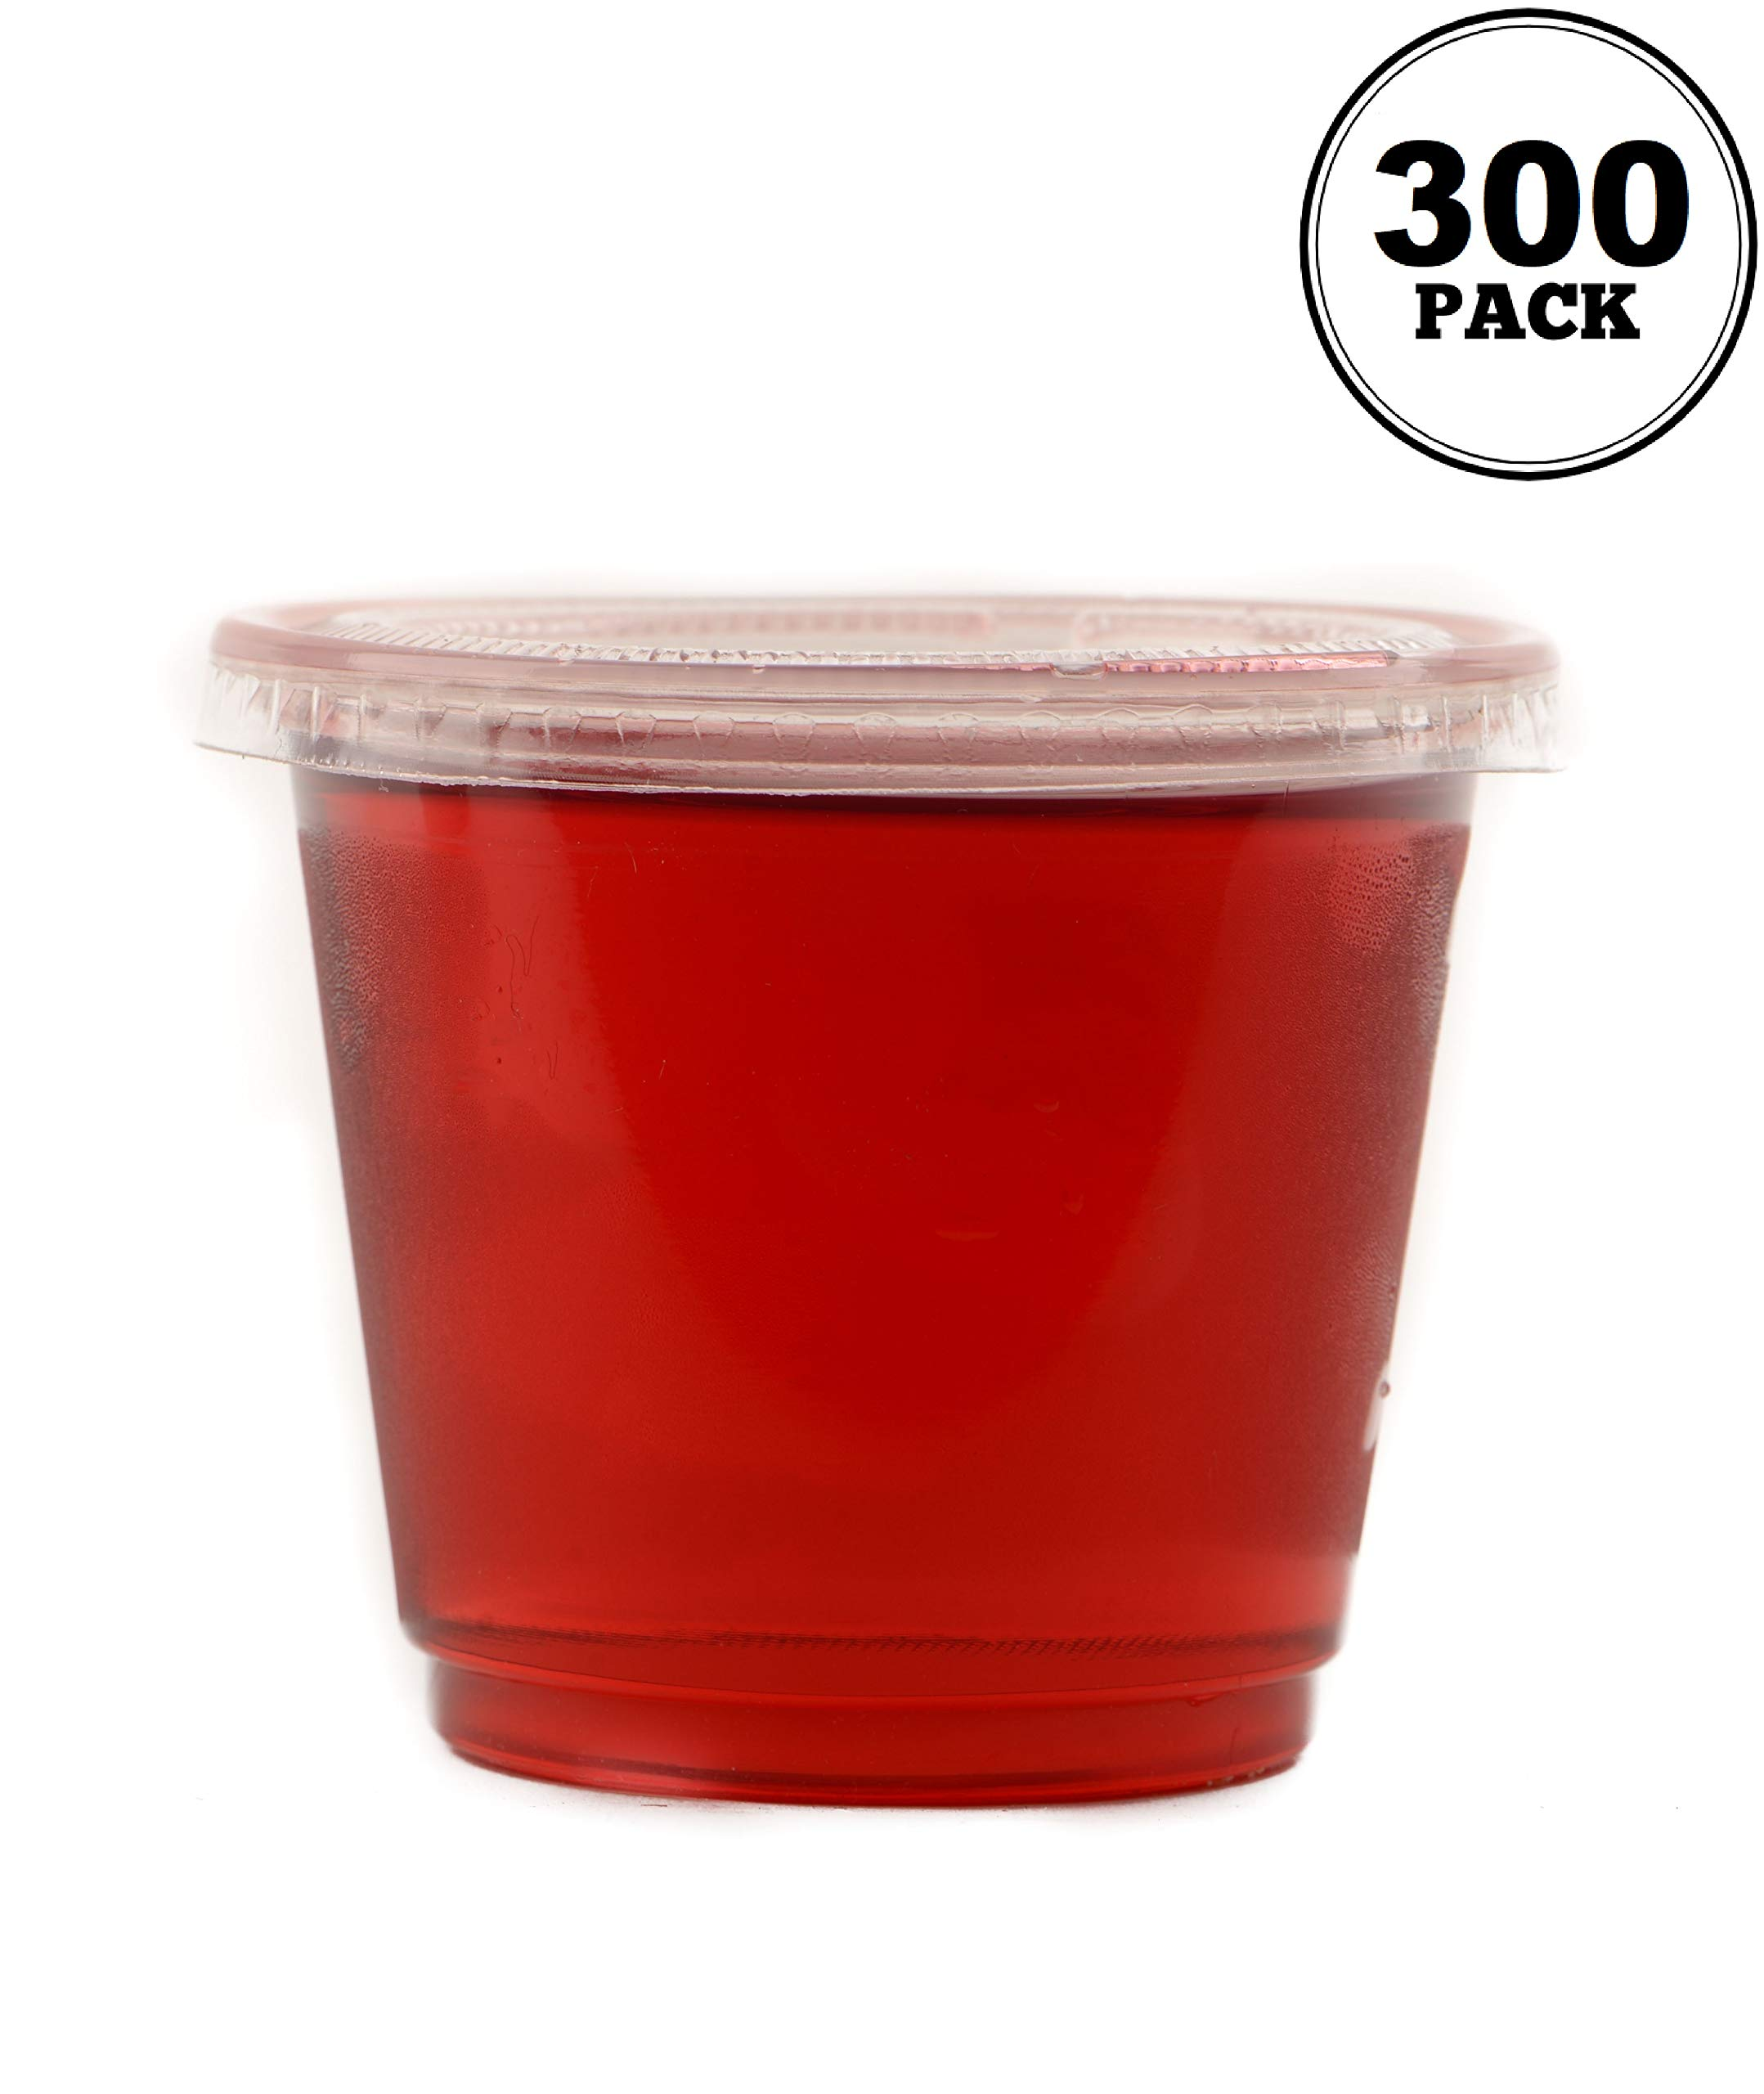 EcoQuality [300 Pack] 4 Oz Leak Proof Plastic Condiment Souffle Containers with Lids - Plastic Portion Cup with Plastic Lid Perfect for Sauces, Samples, Slime, Jello Shot, Food Storage & More! by EcoQuality